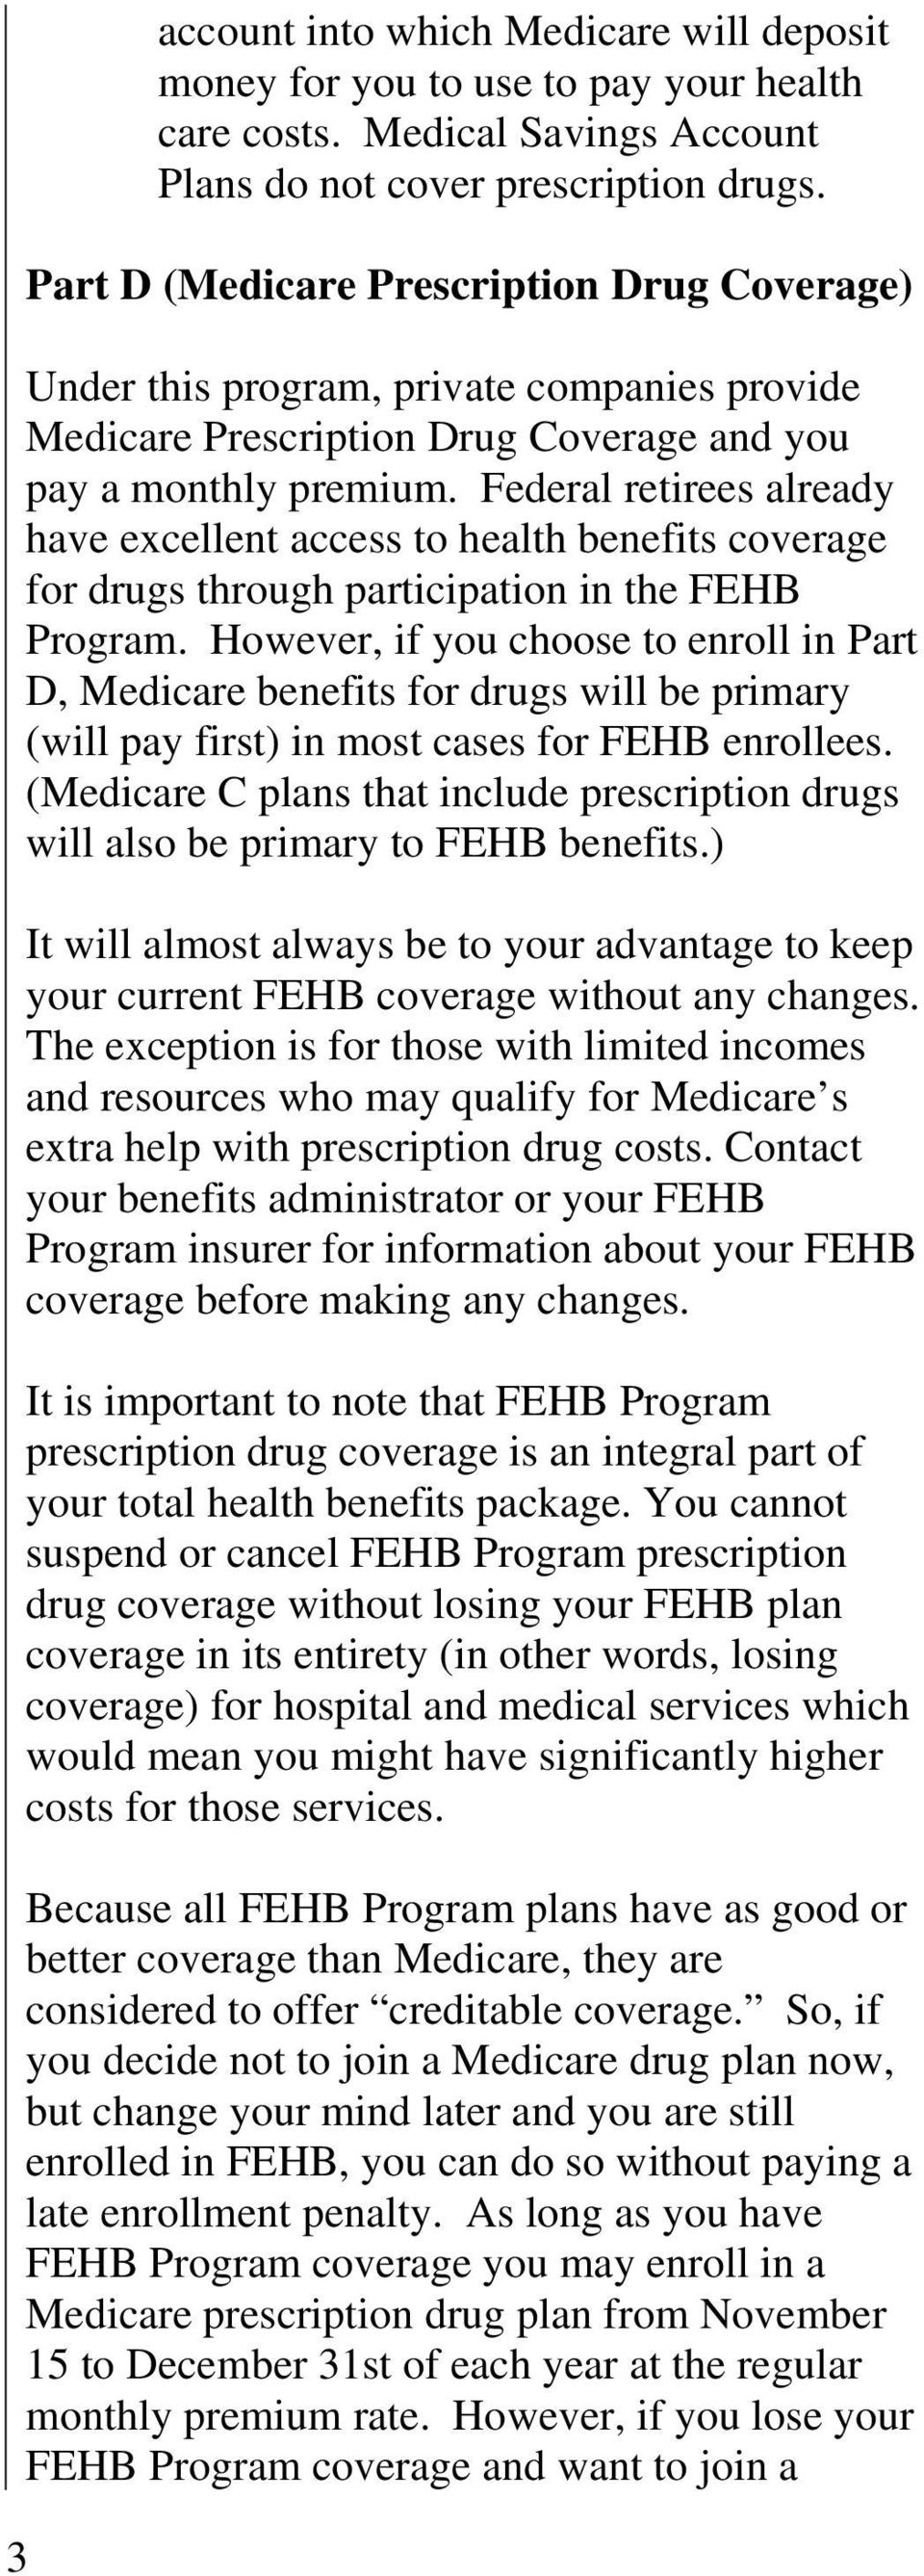 Federal retirees already have excellent access to health benefits coverage for drugs through participation in the FEHB Program.